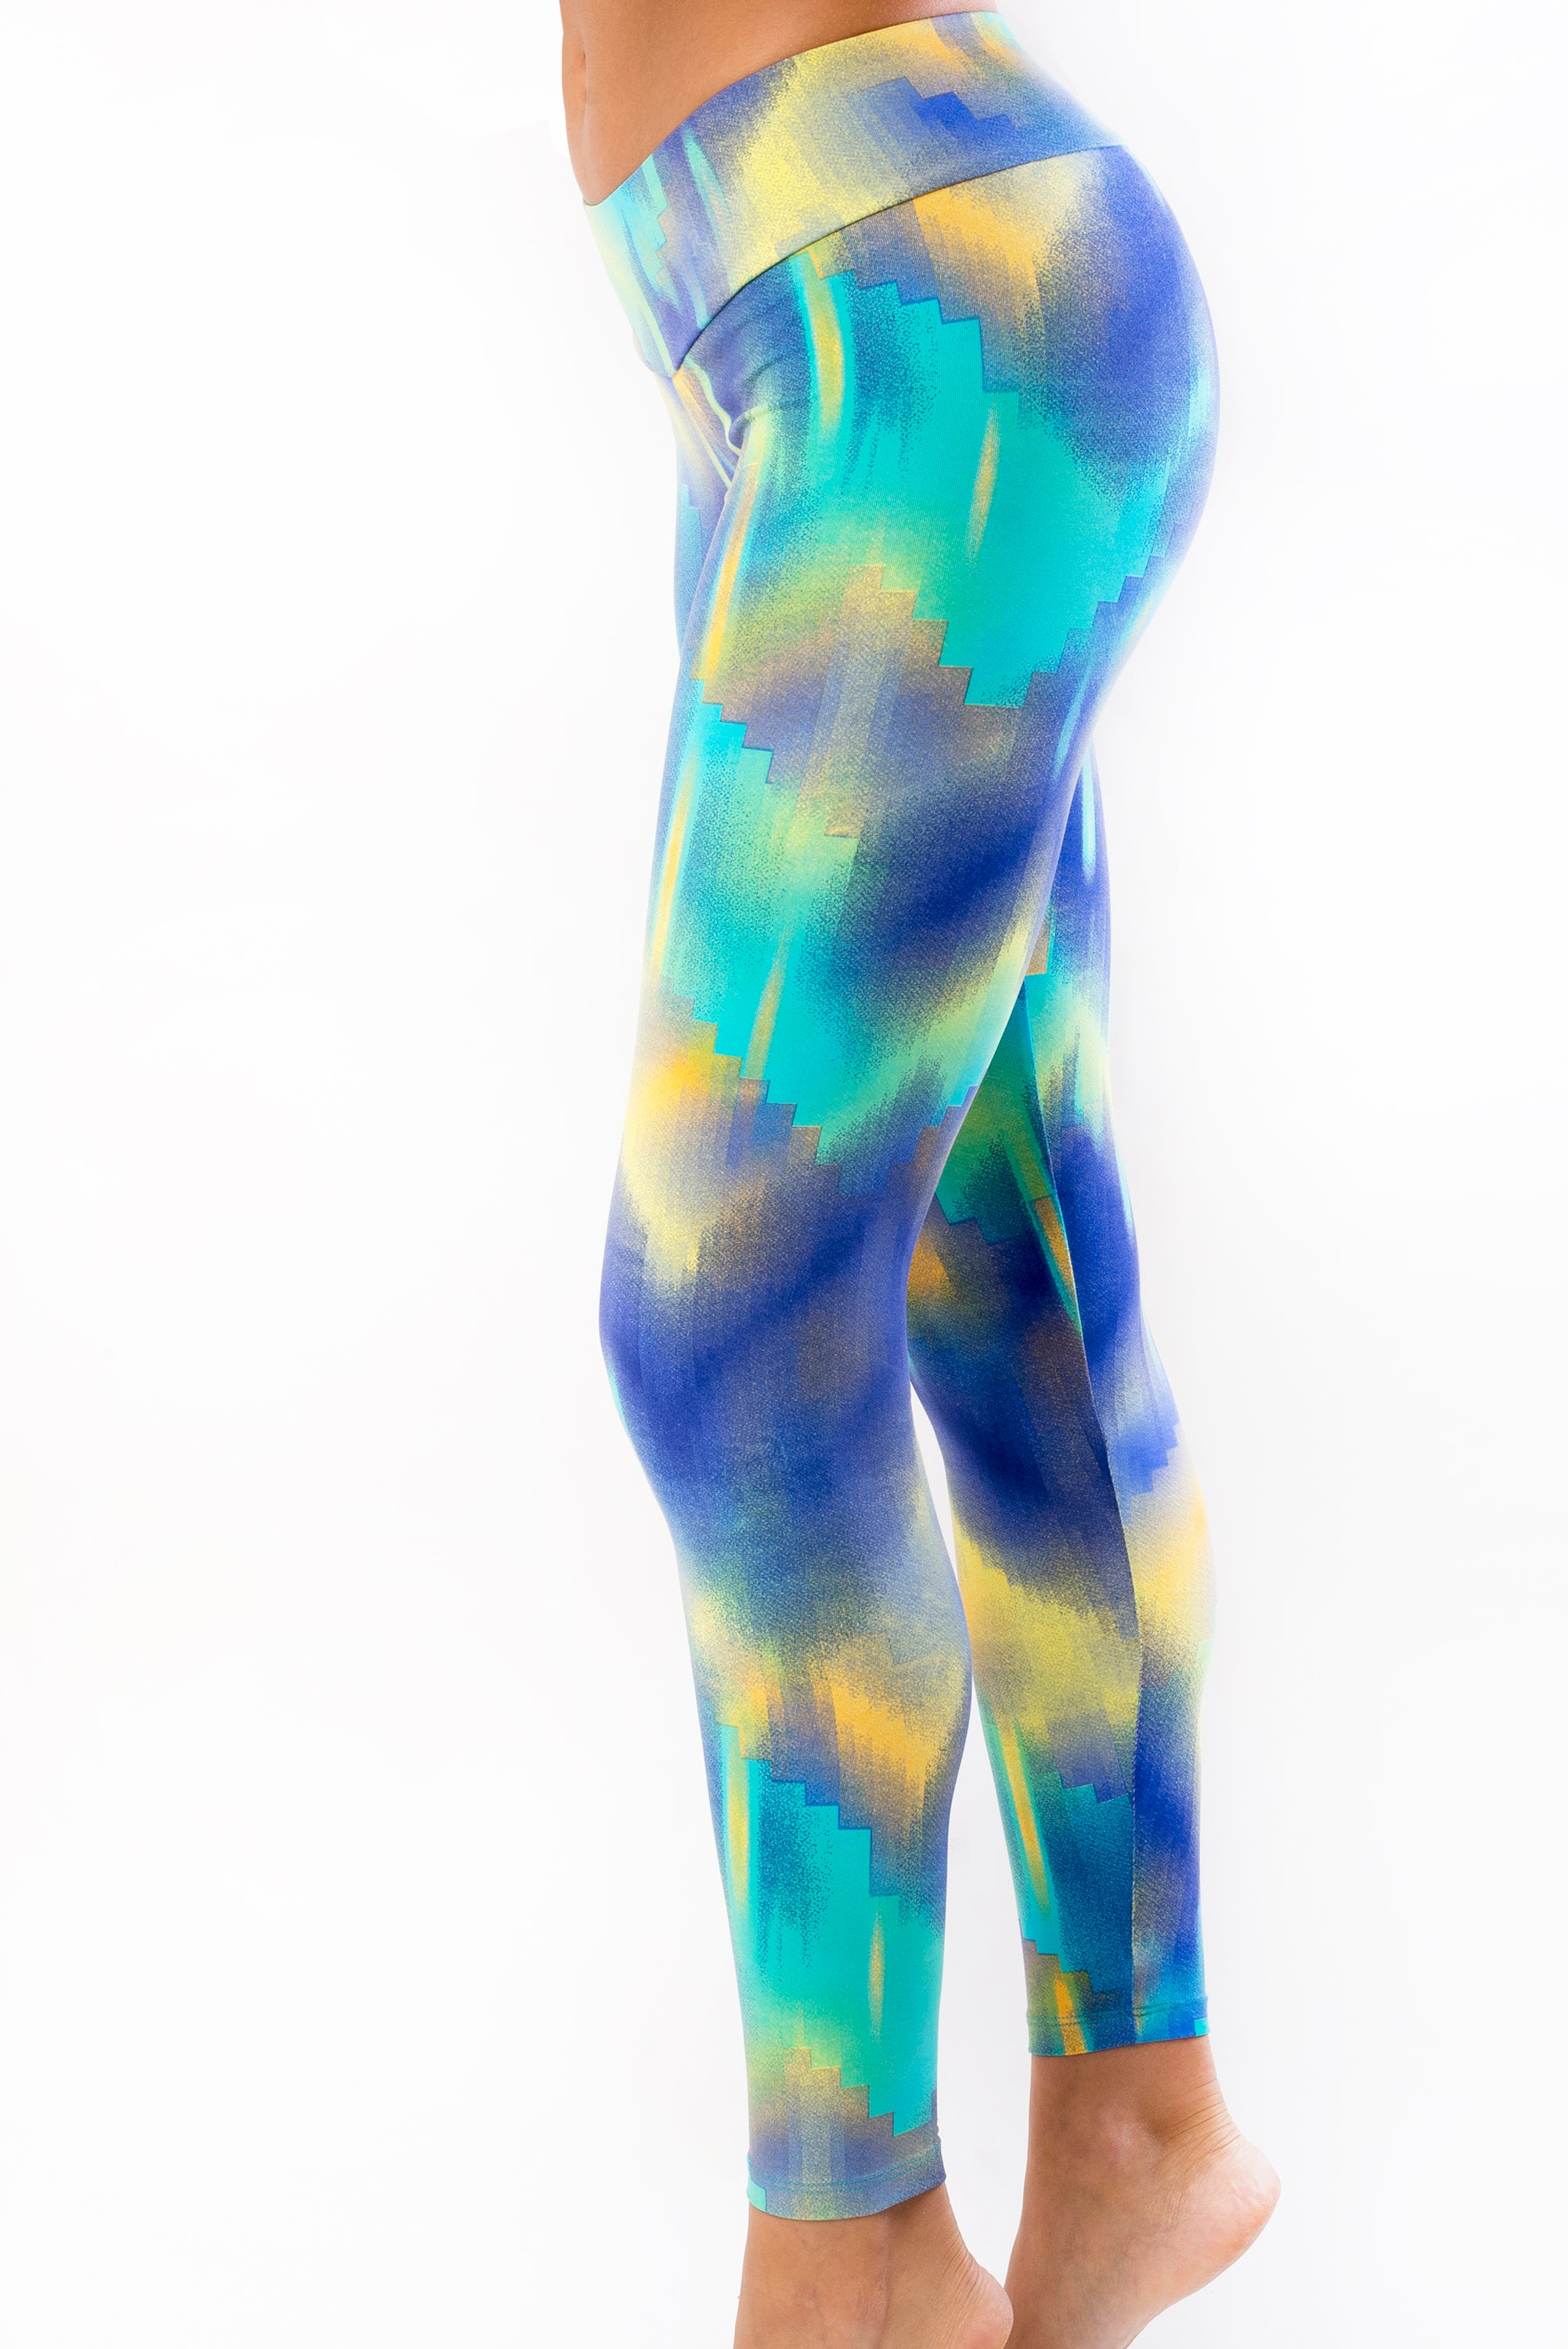 Mystic Blue Legging - Brazilian Athleisure wear Leggings - activewear, yoga clothes, yoga pants, pilates, gym wear Beleza Australia Beleza Australia